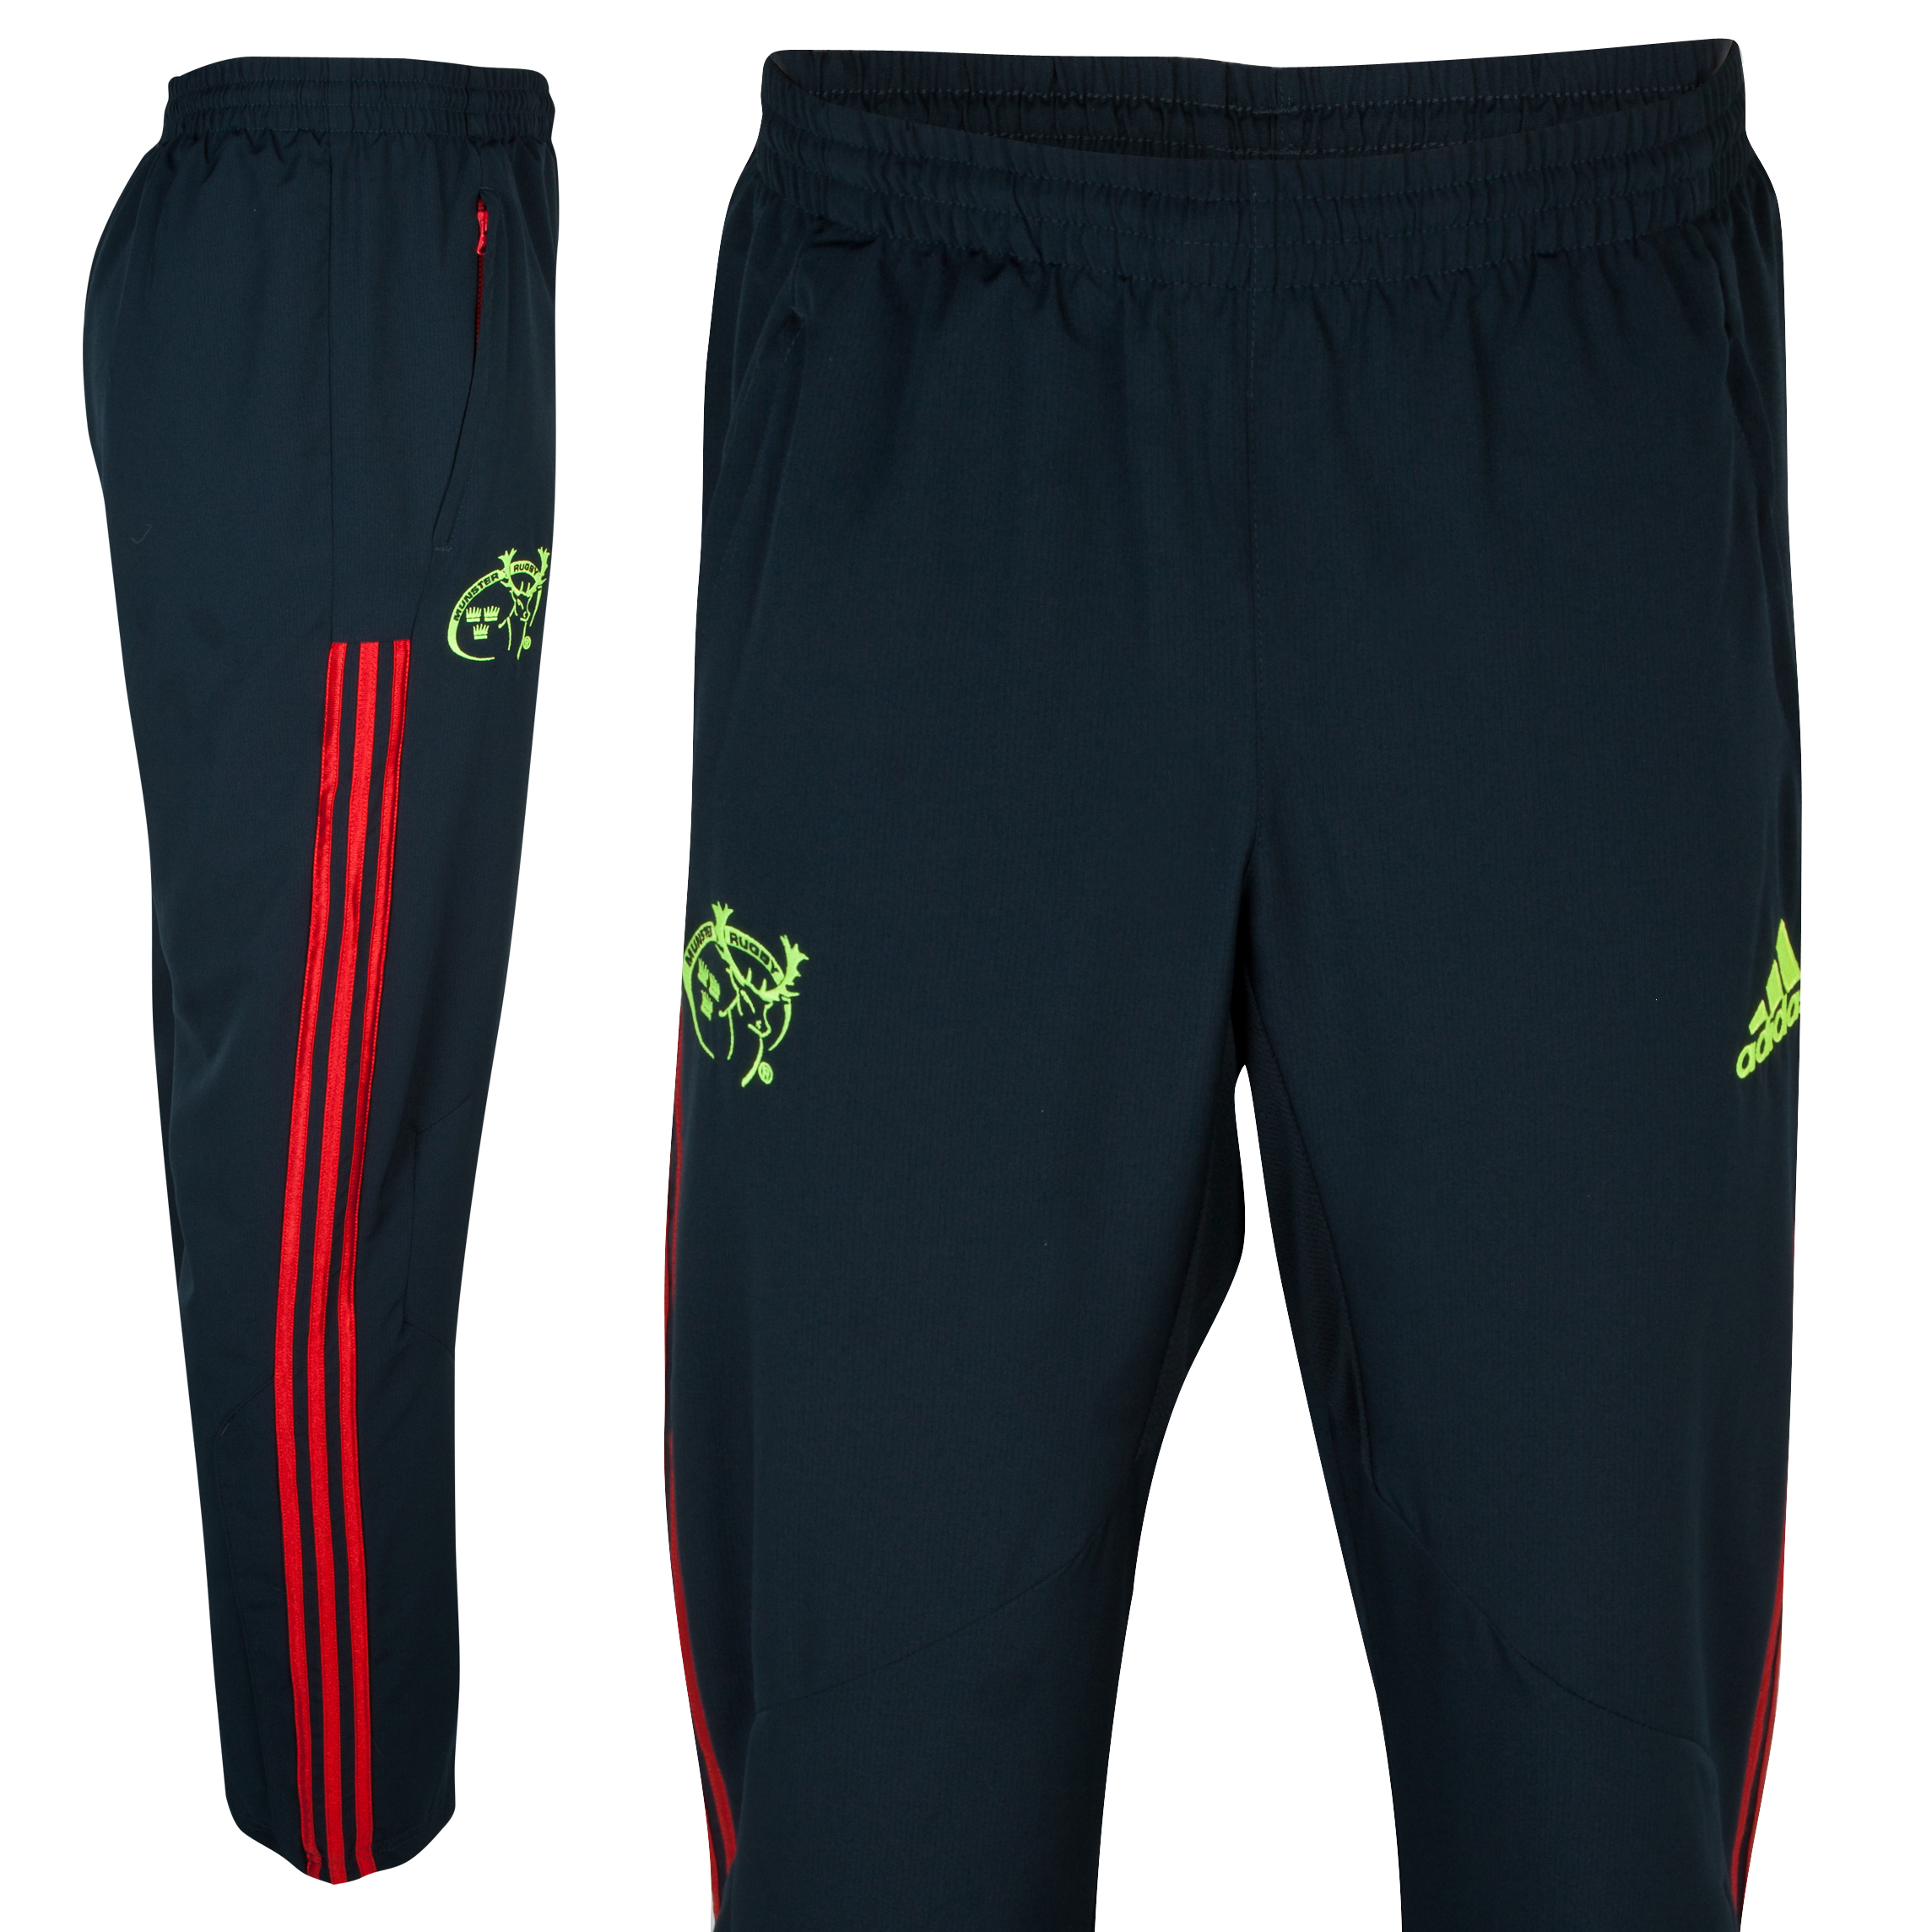 Munster Training Woven Pant - Tech Onix/Collegiate Red